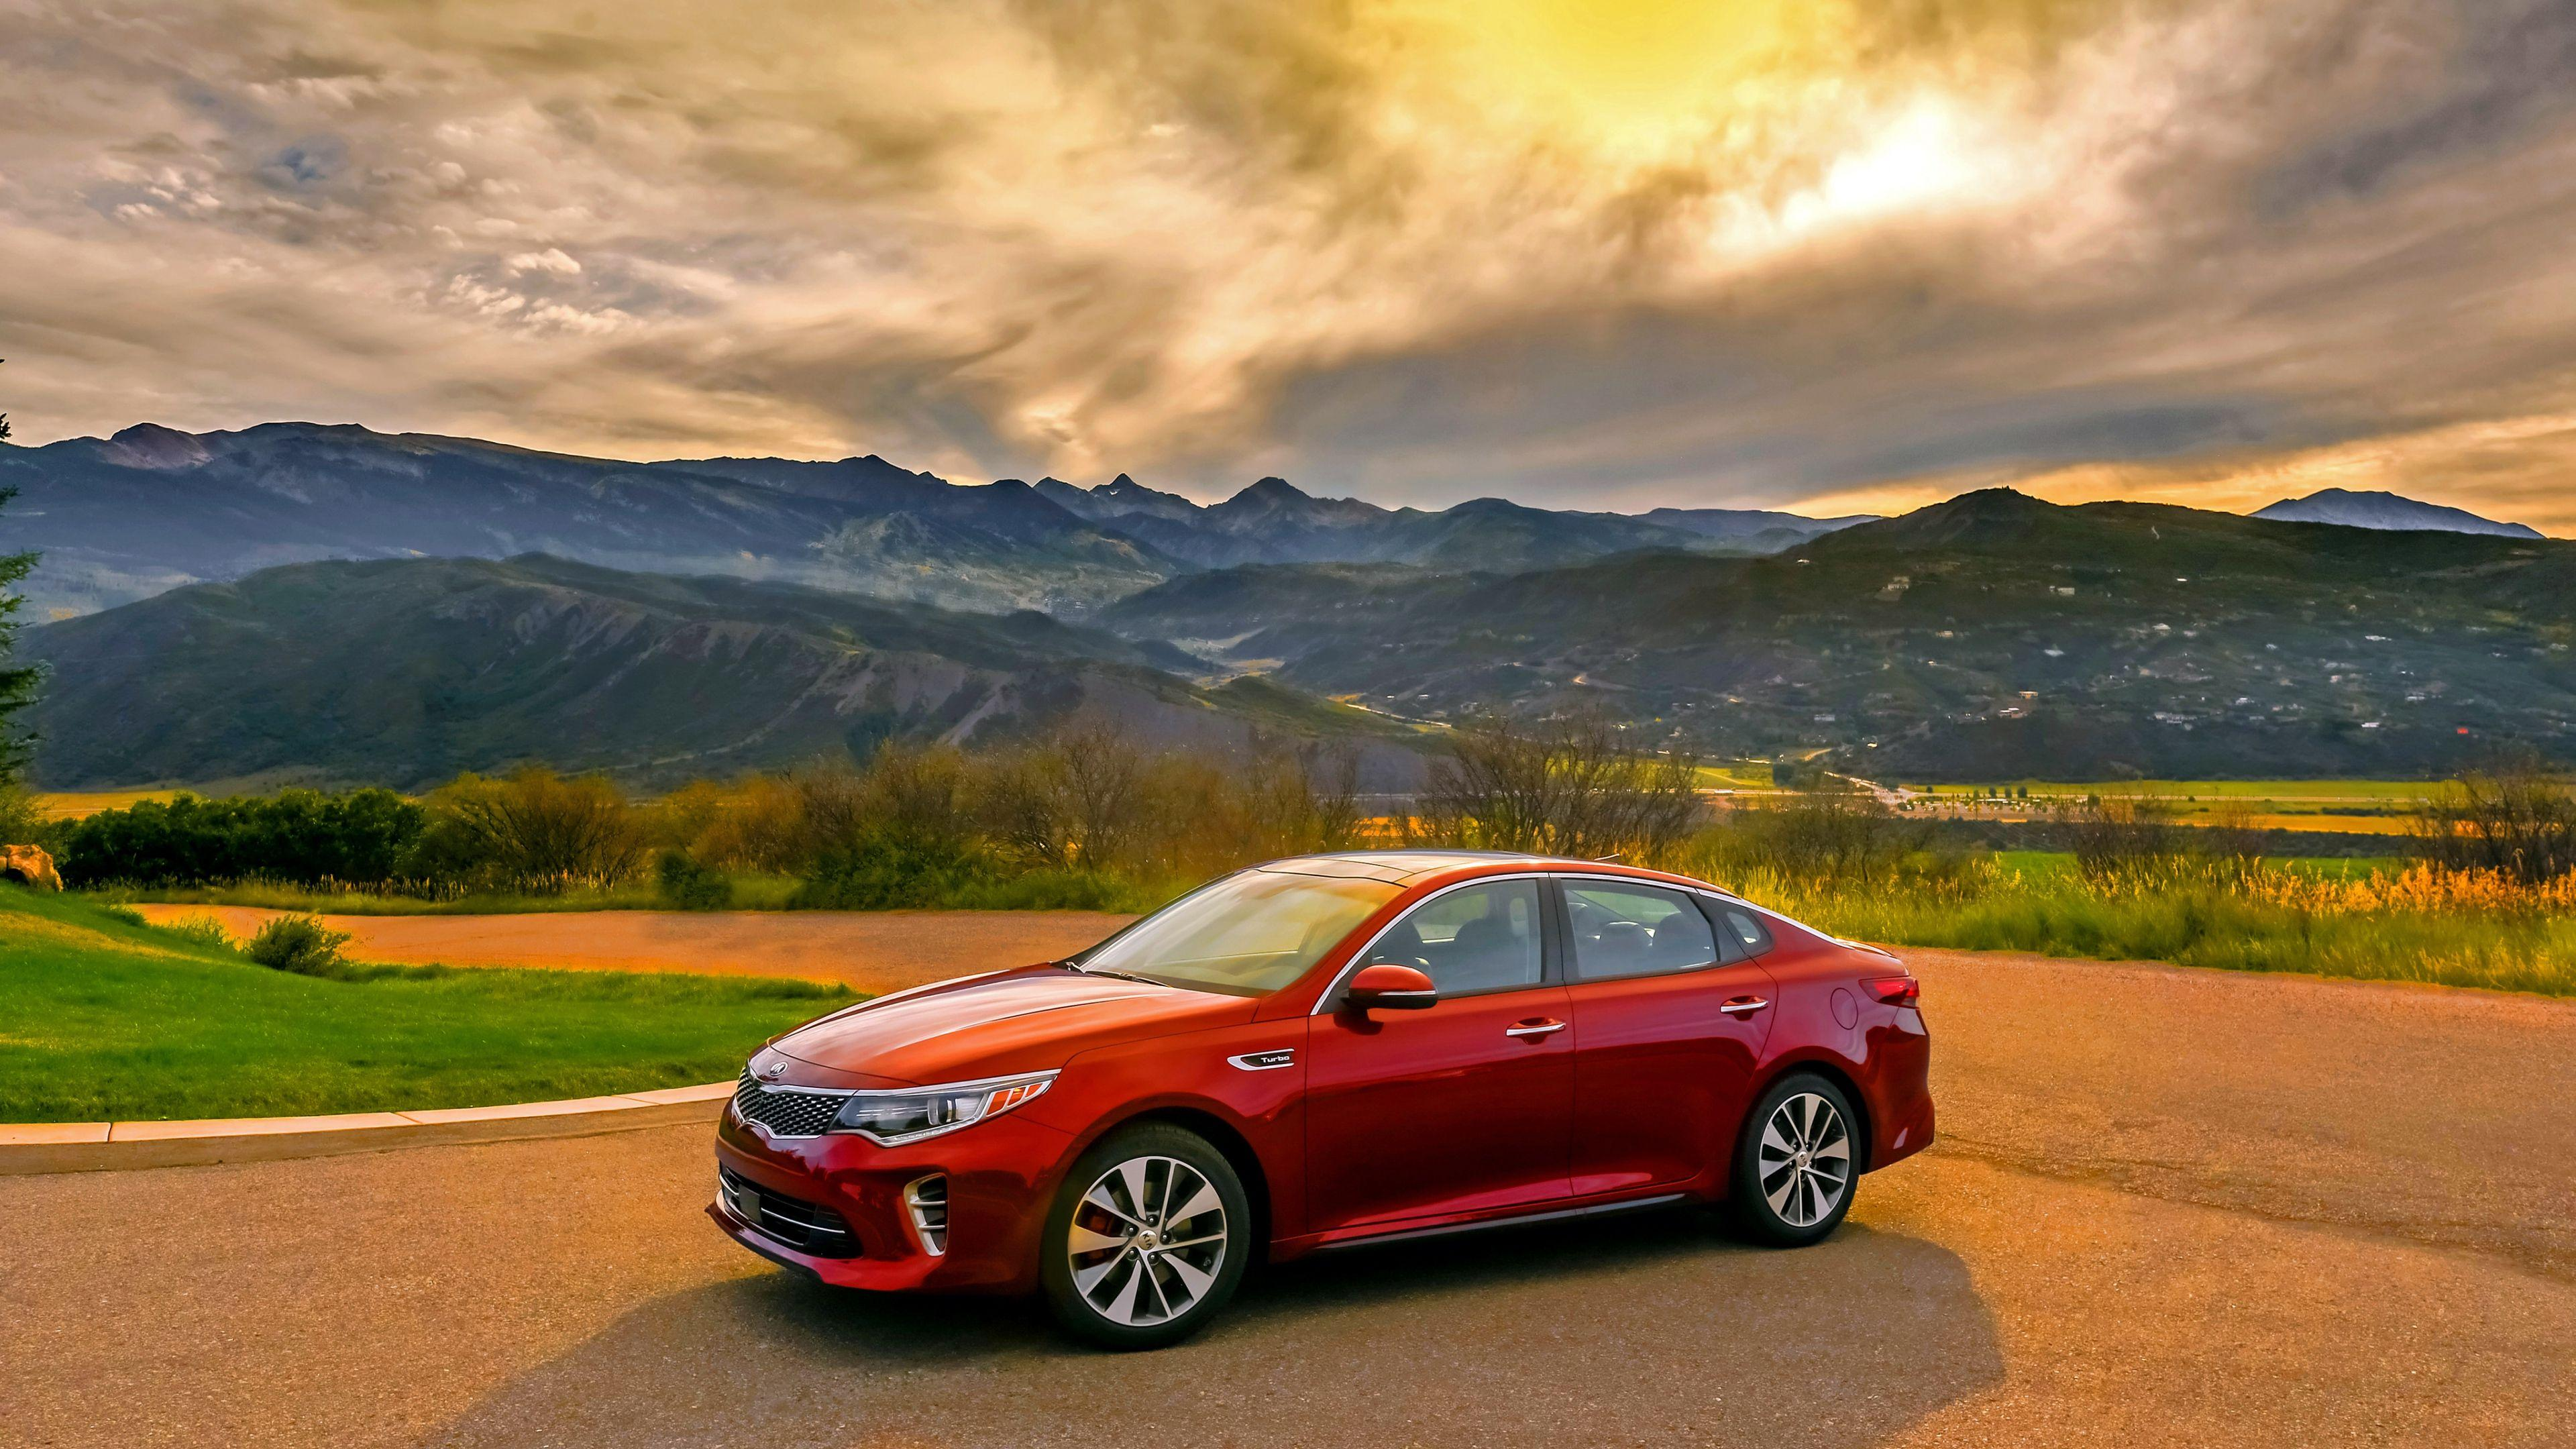 Download Wallpaper 3840x2160 Kia, Optima, Red, Side view, Mountains ...